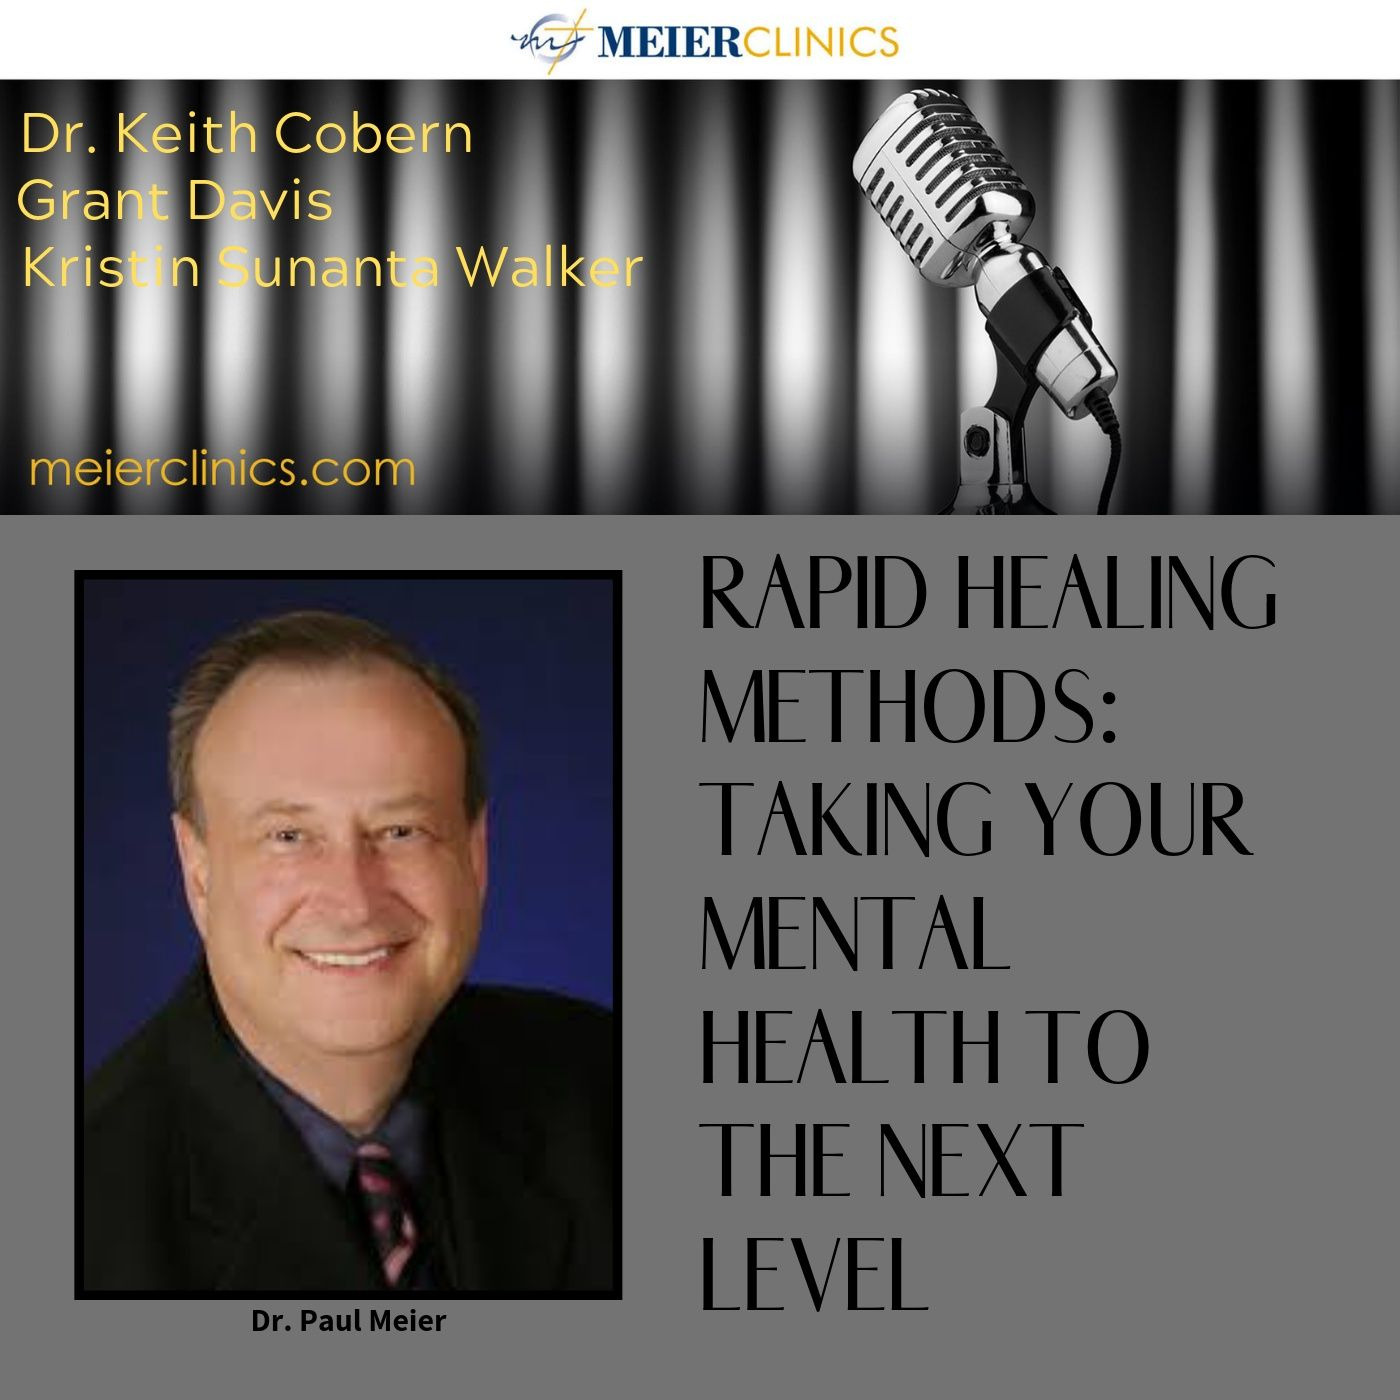 Rapid Healing Methods: Taking Your Mental Health to the Next Level